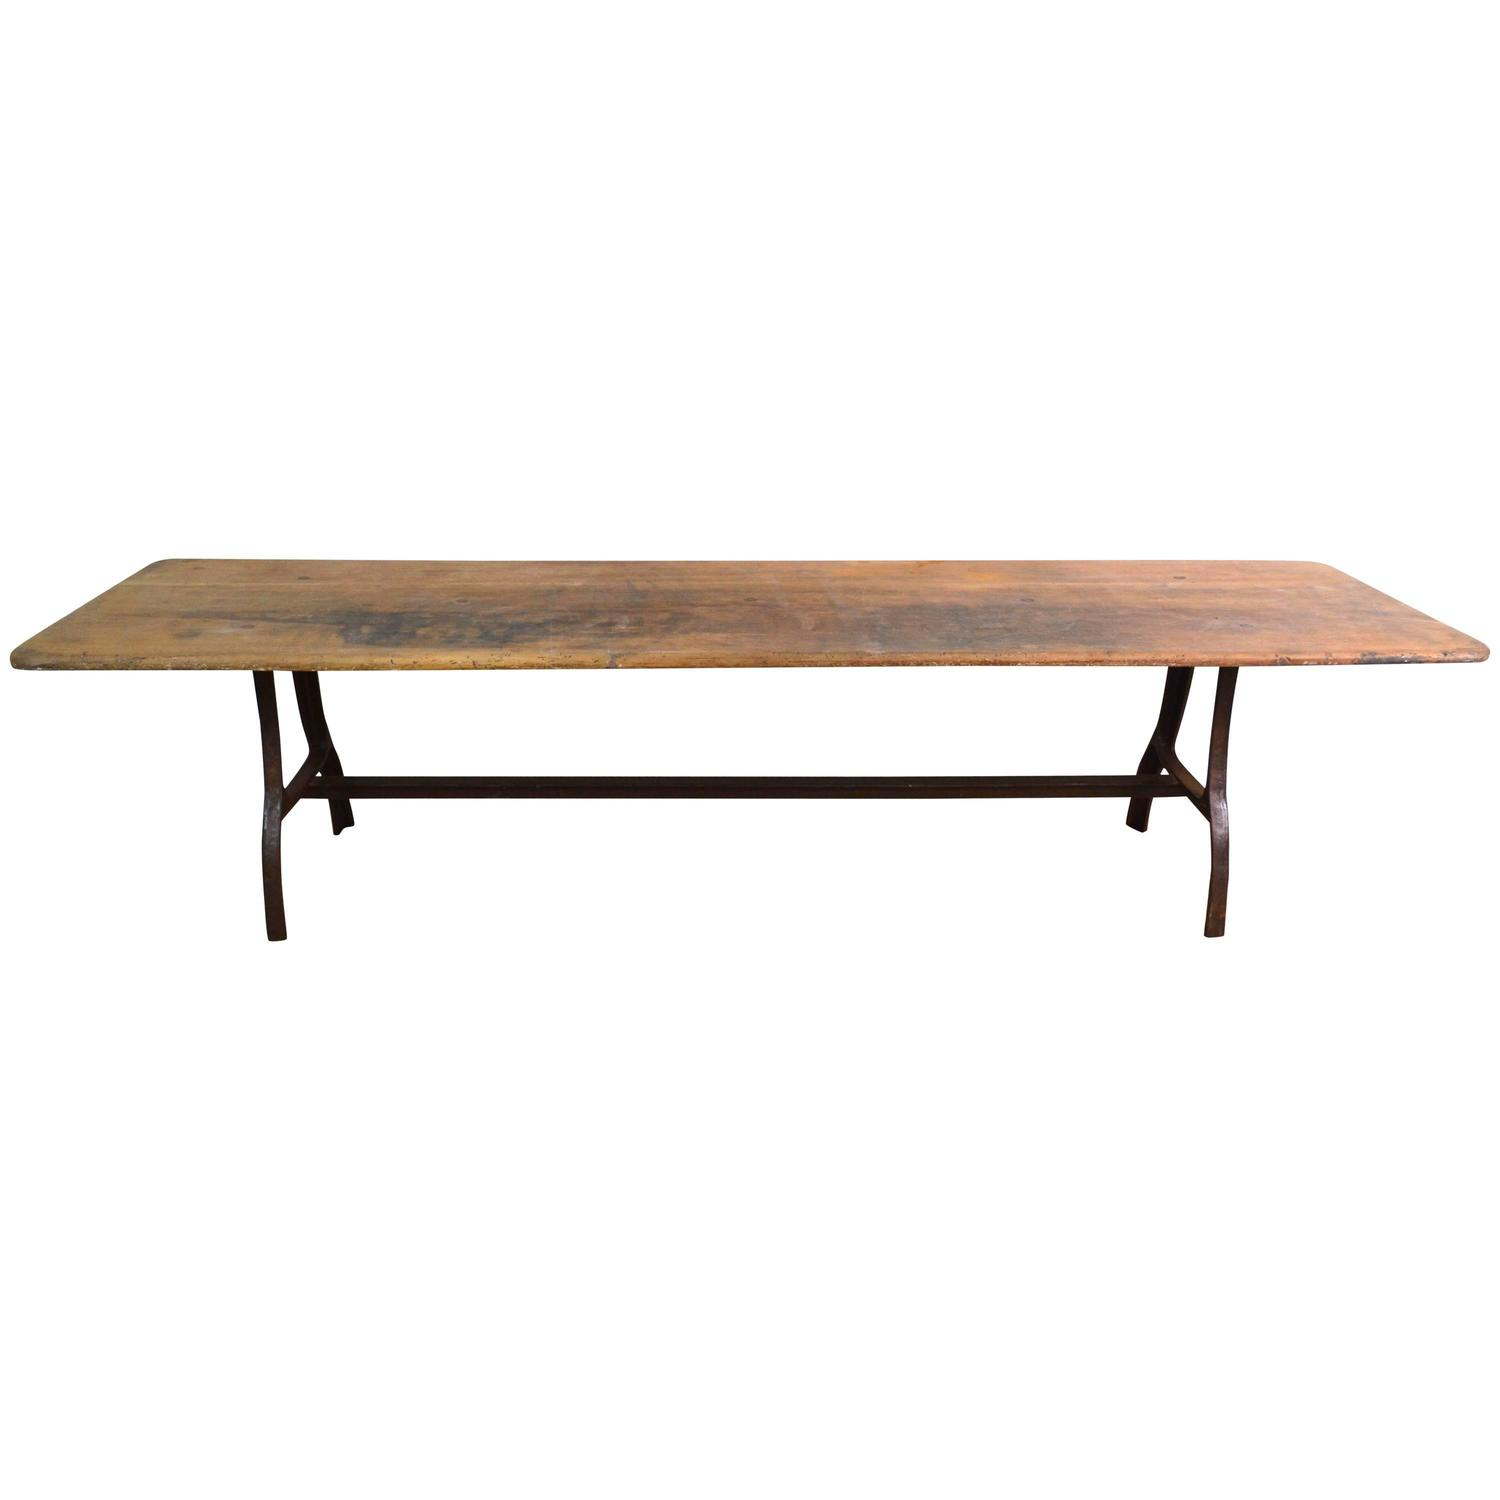 Industrial table walnut wood top iron legs for sale at for Wood table iron legs